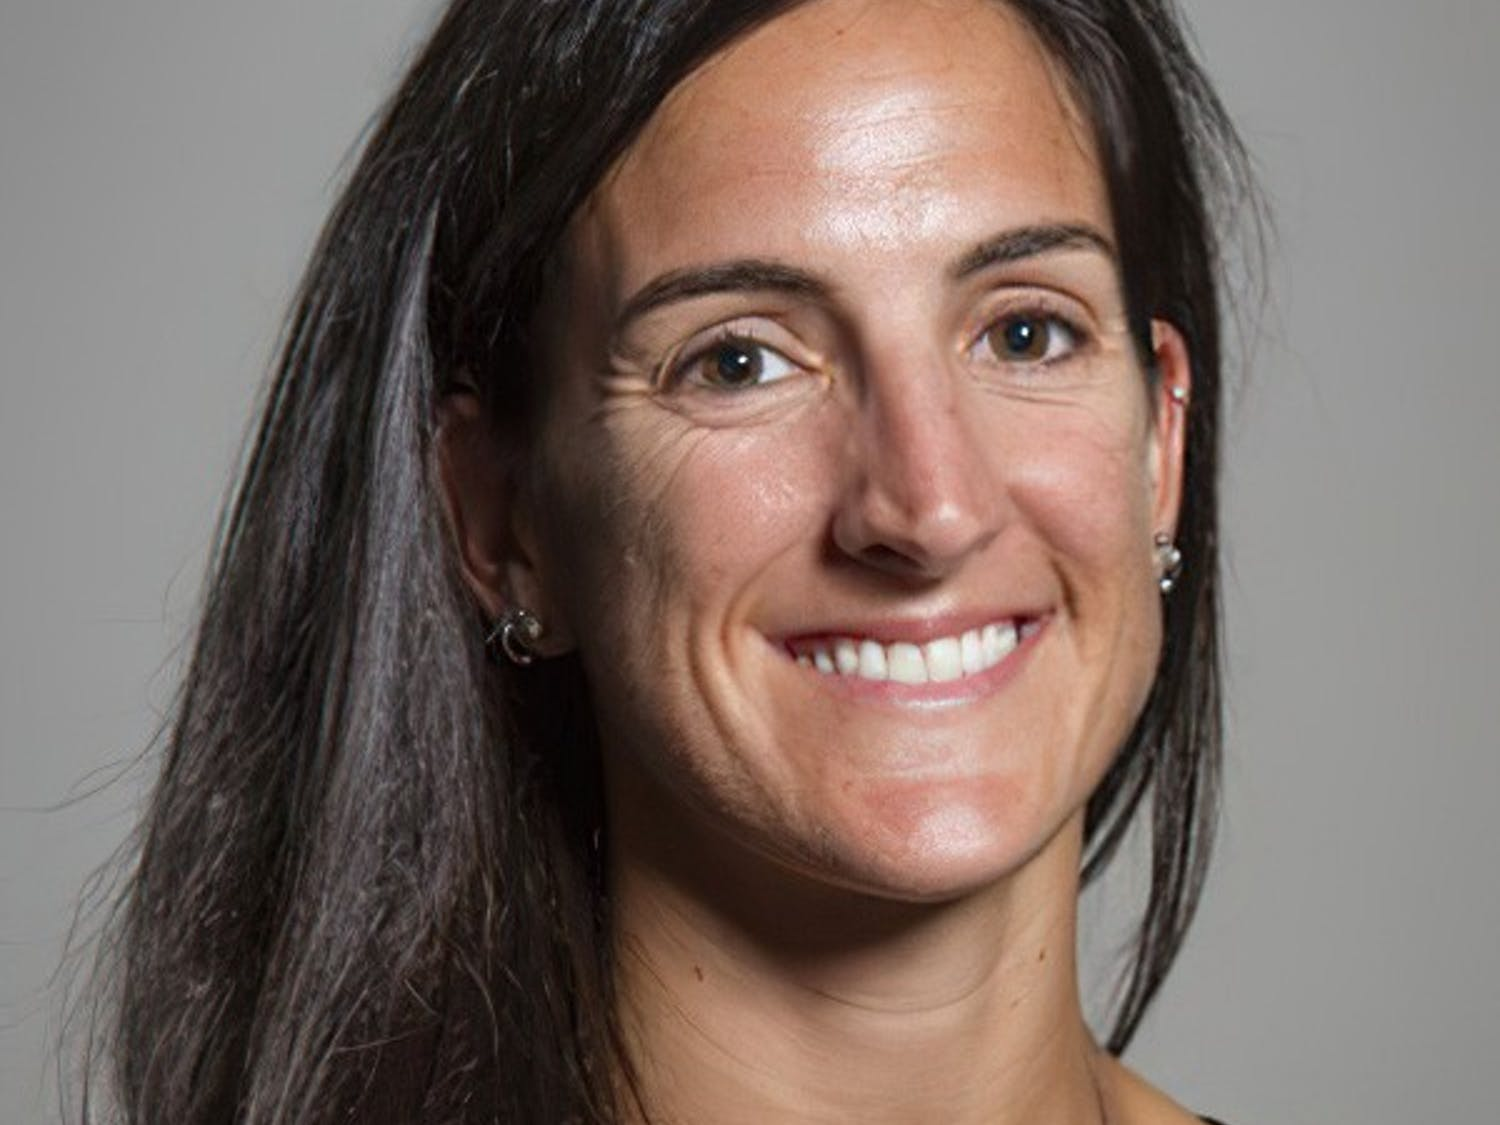 Erin Neppel is the new head coach of the women's rowing team. Photo courtesy of UNC Athletic Communications.